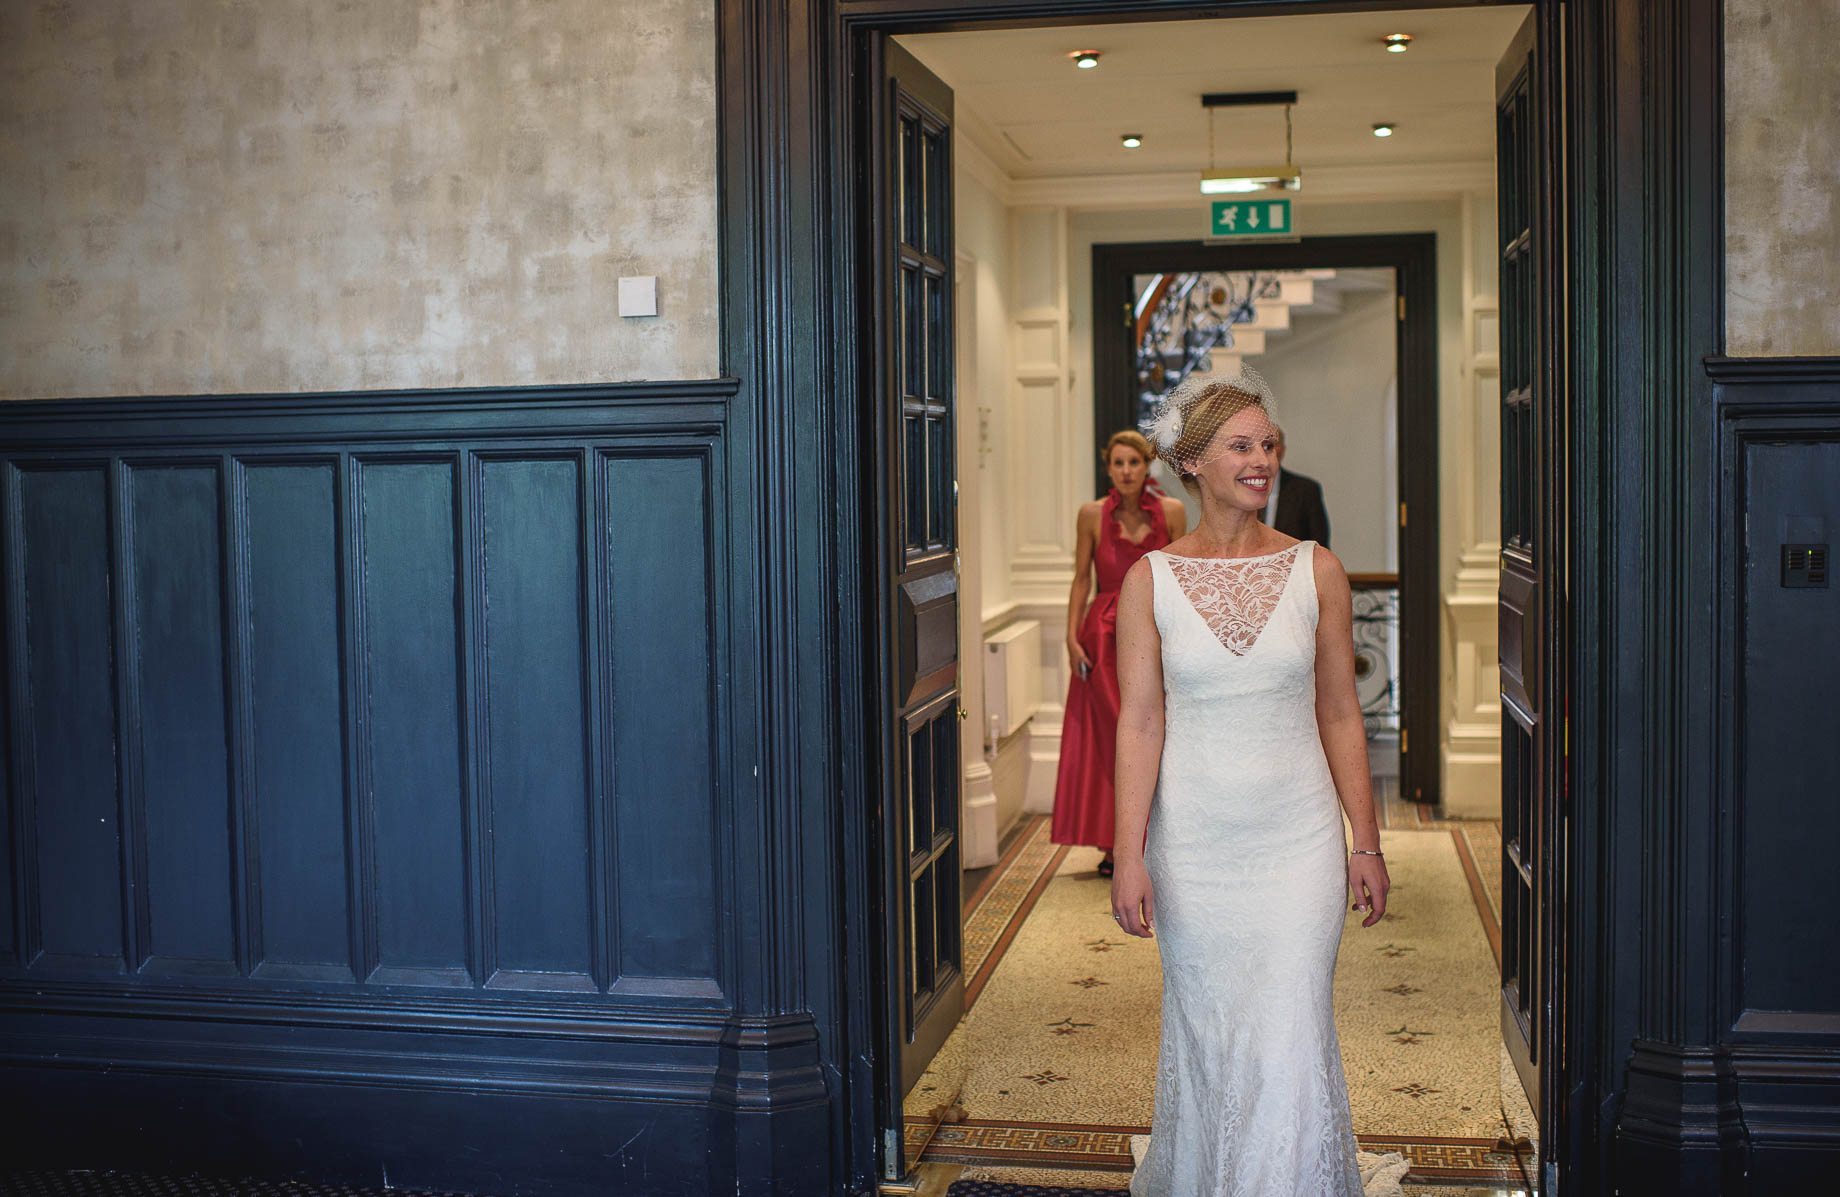 Bllomsbury House wedding photography in London - Katie and Taylor (9 of 156)